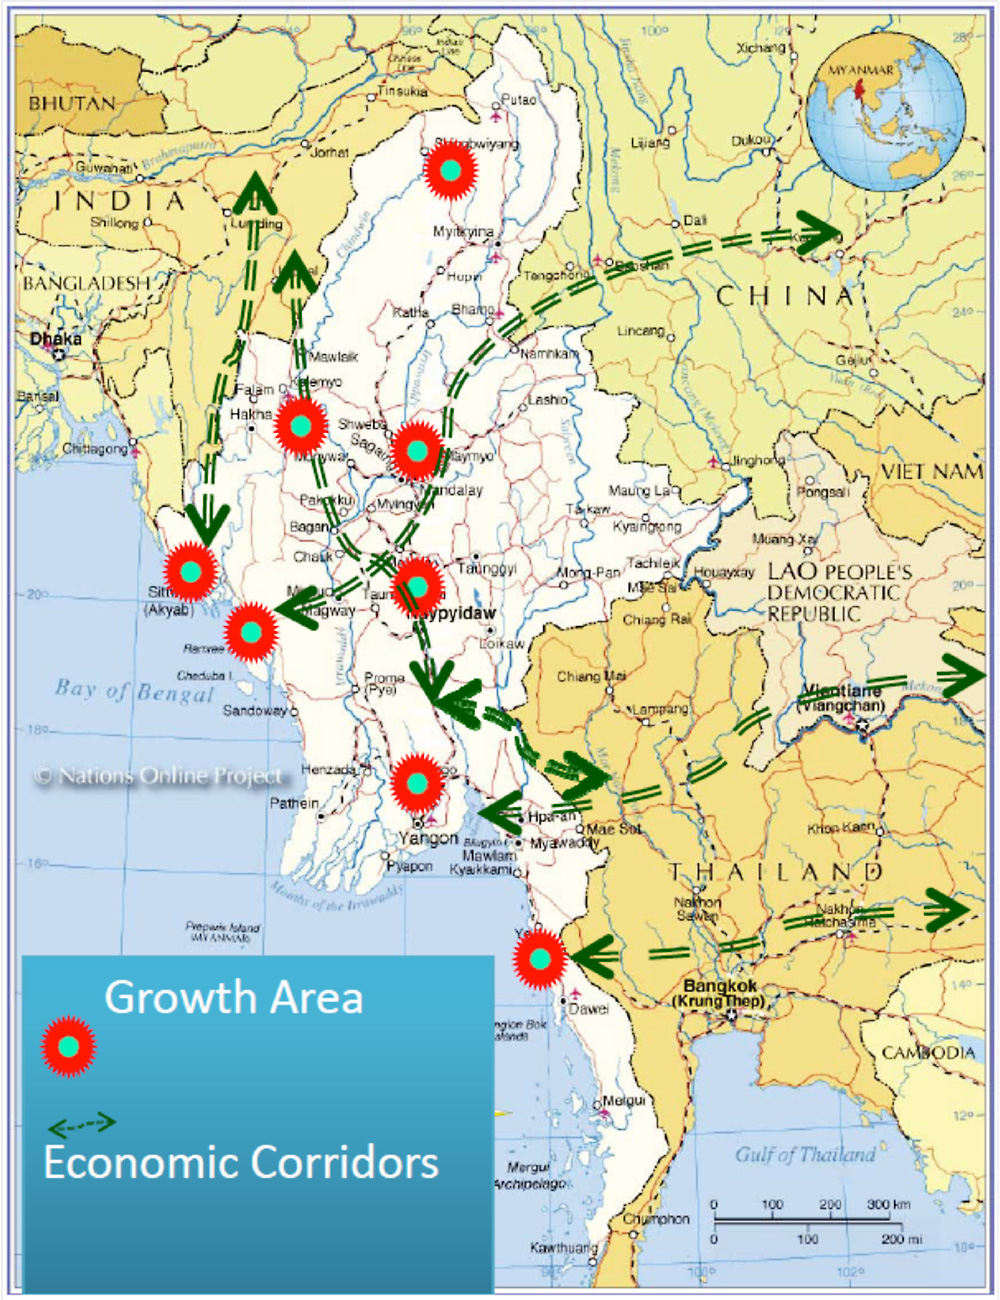 Overview of Spatial Policy in Myanmar